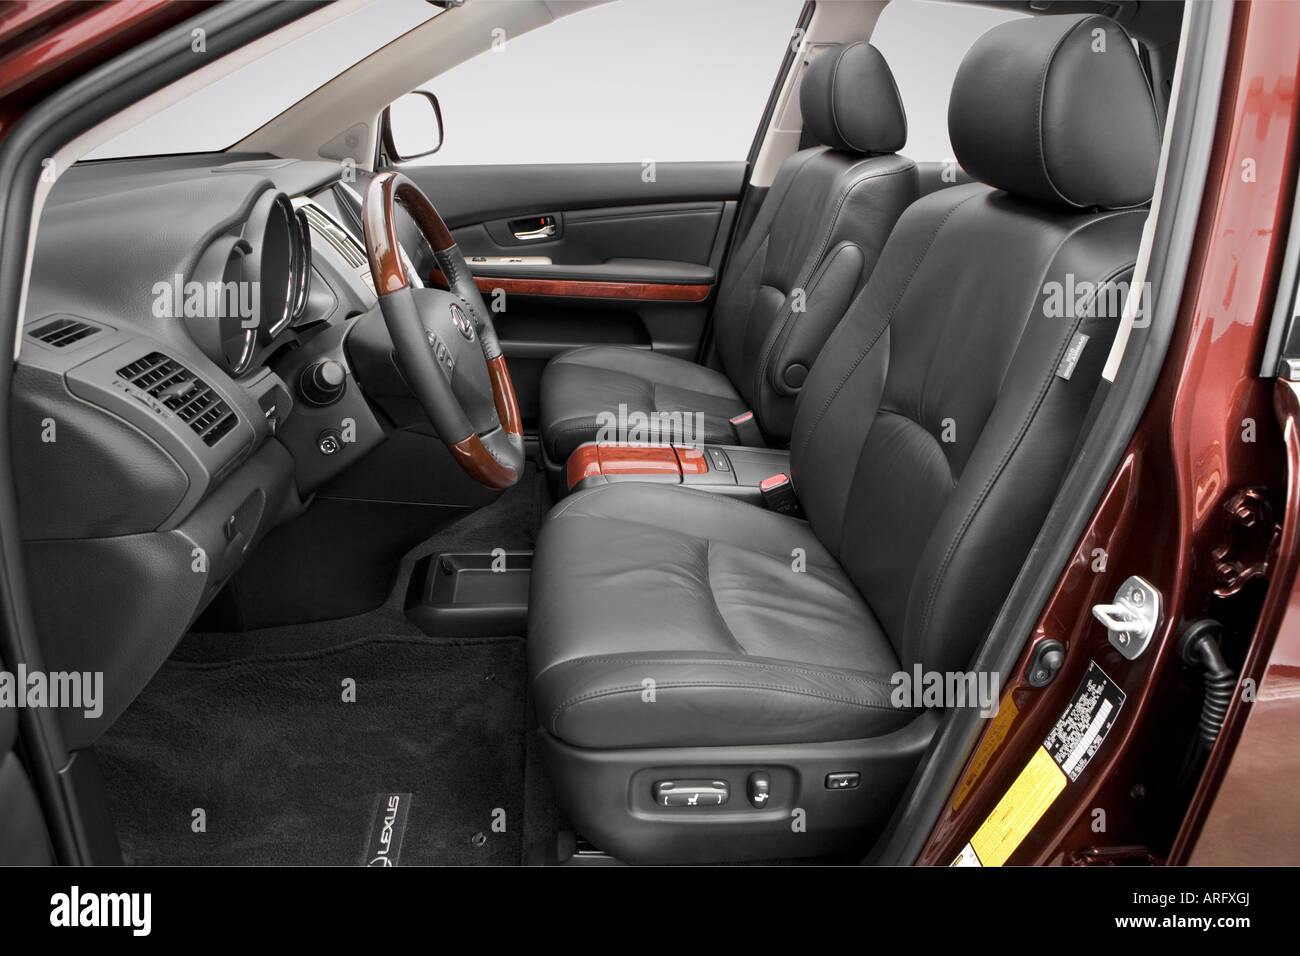 2008 lexus rx 350 in red front seats stock image